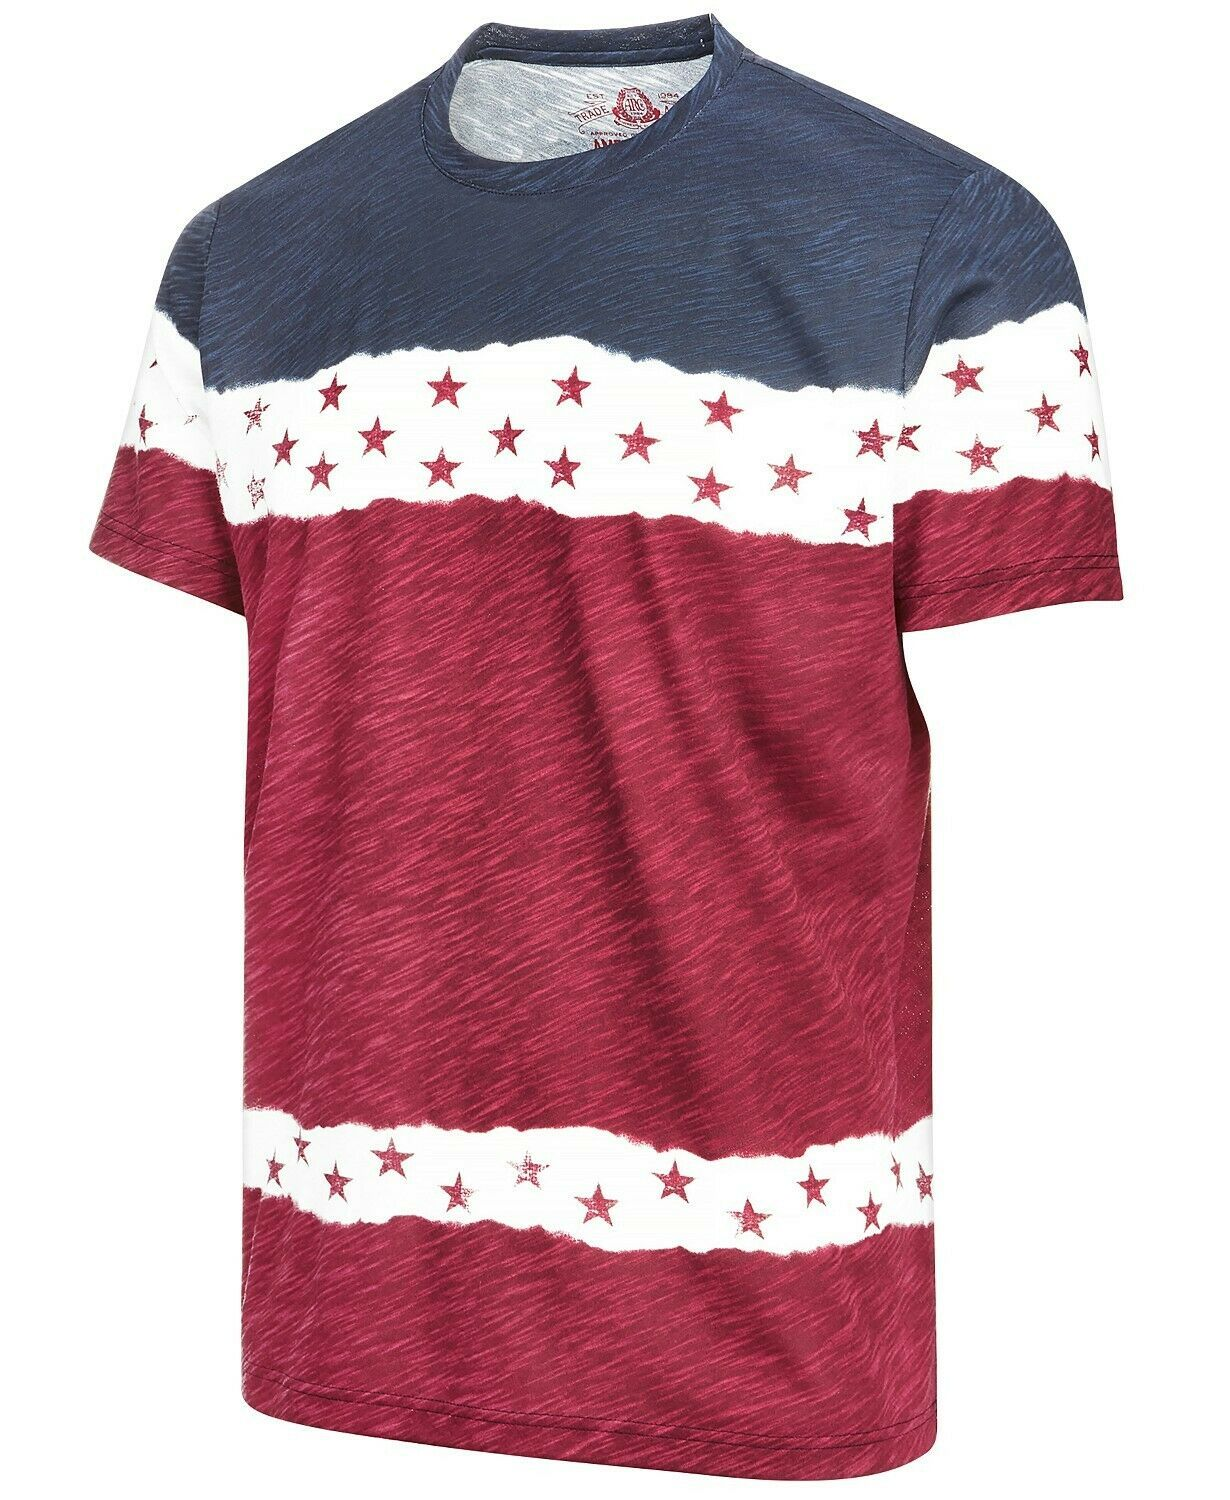 American Rag Men's Americana Colorblocked T-Shirt, Size XXL image 1